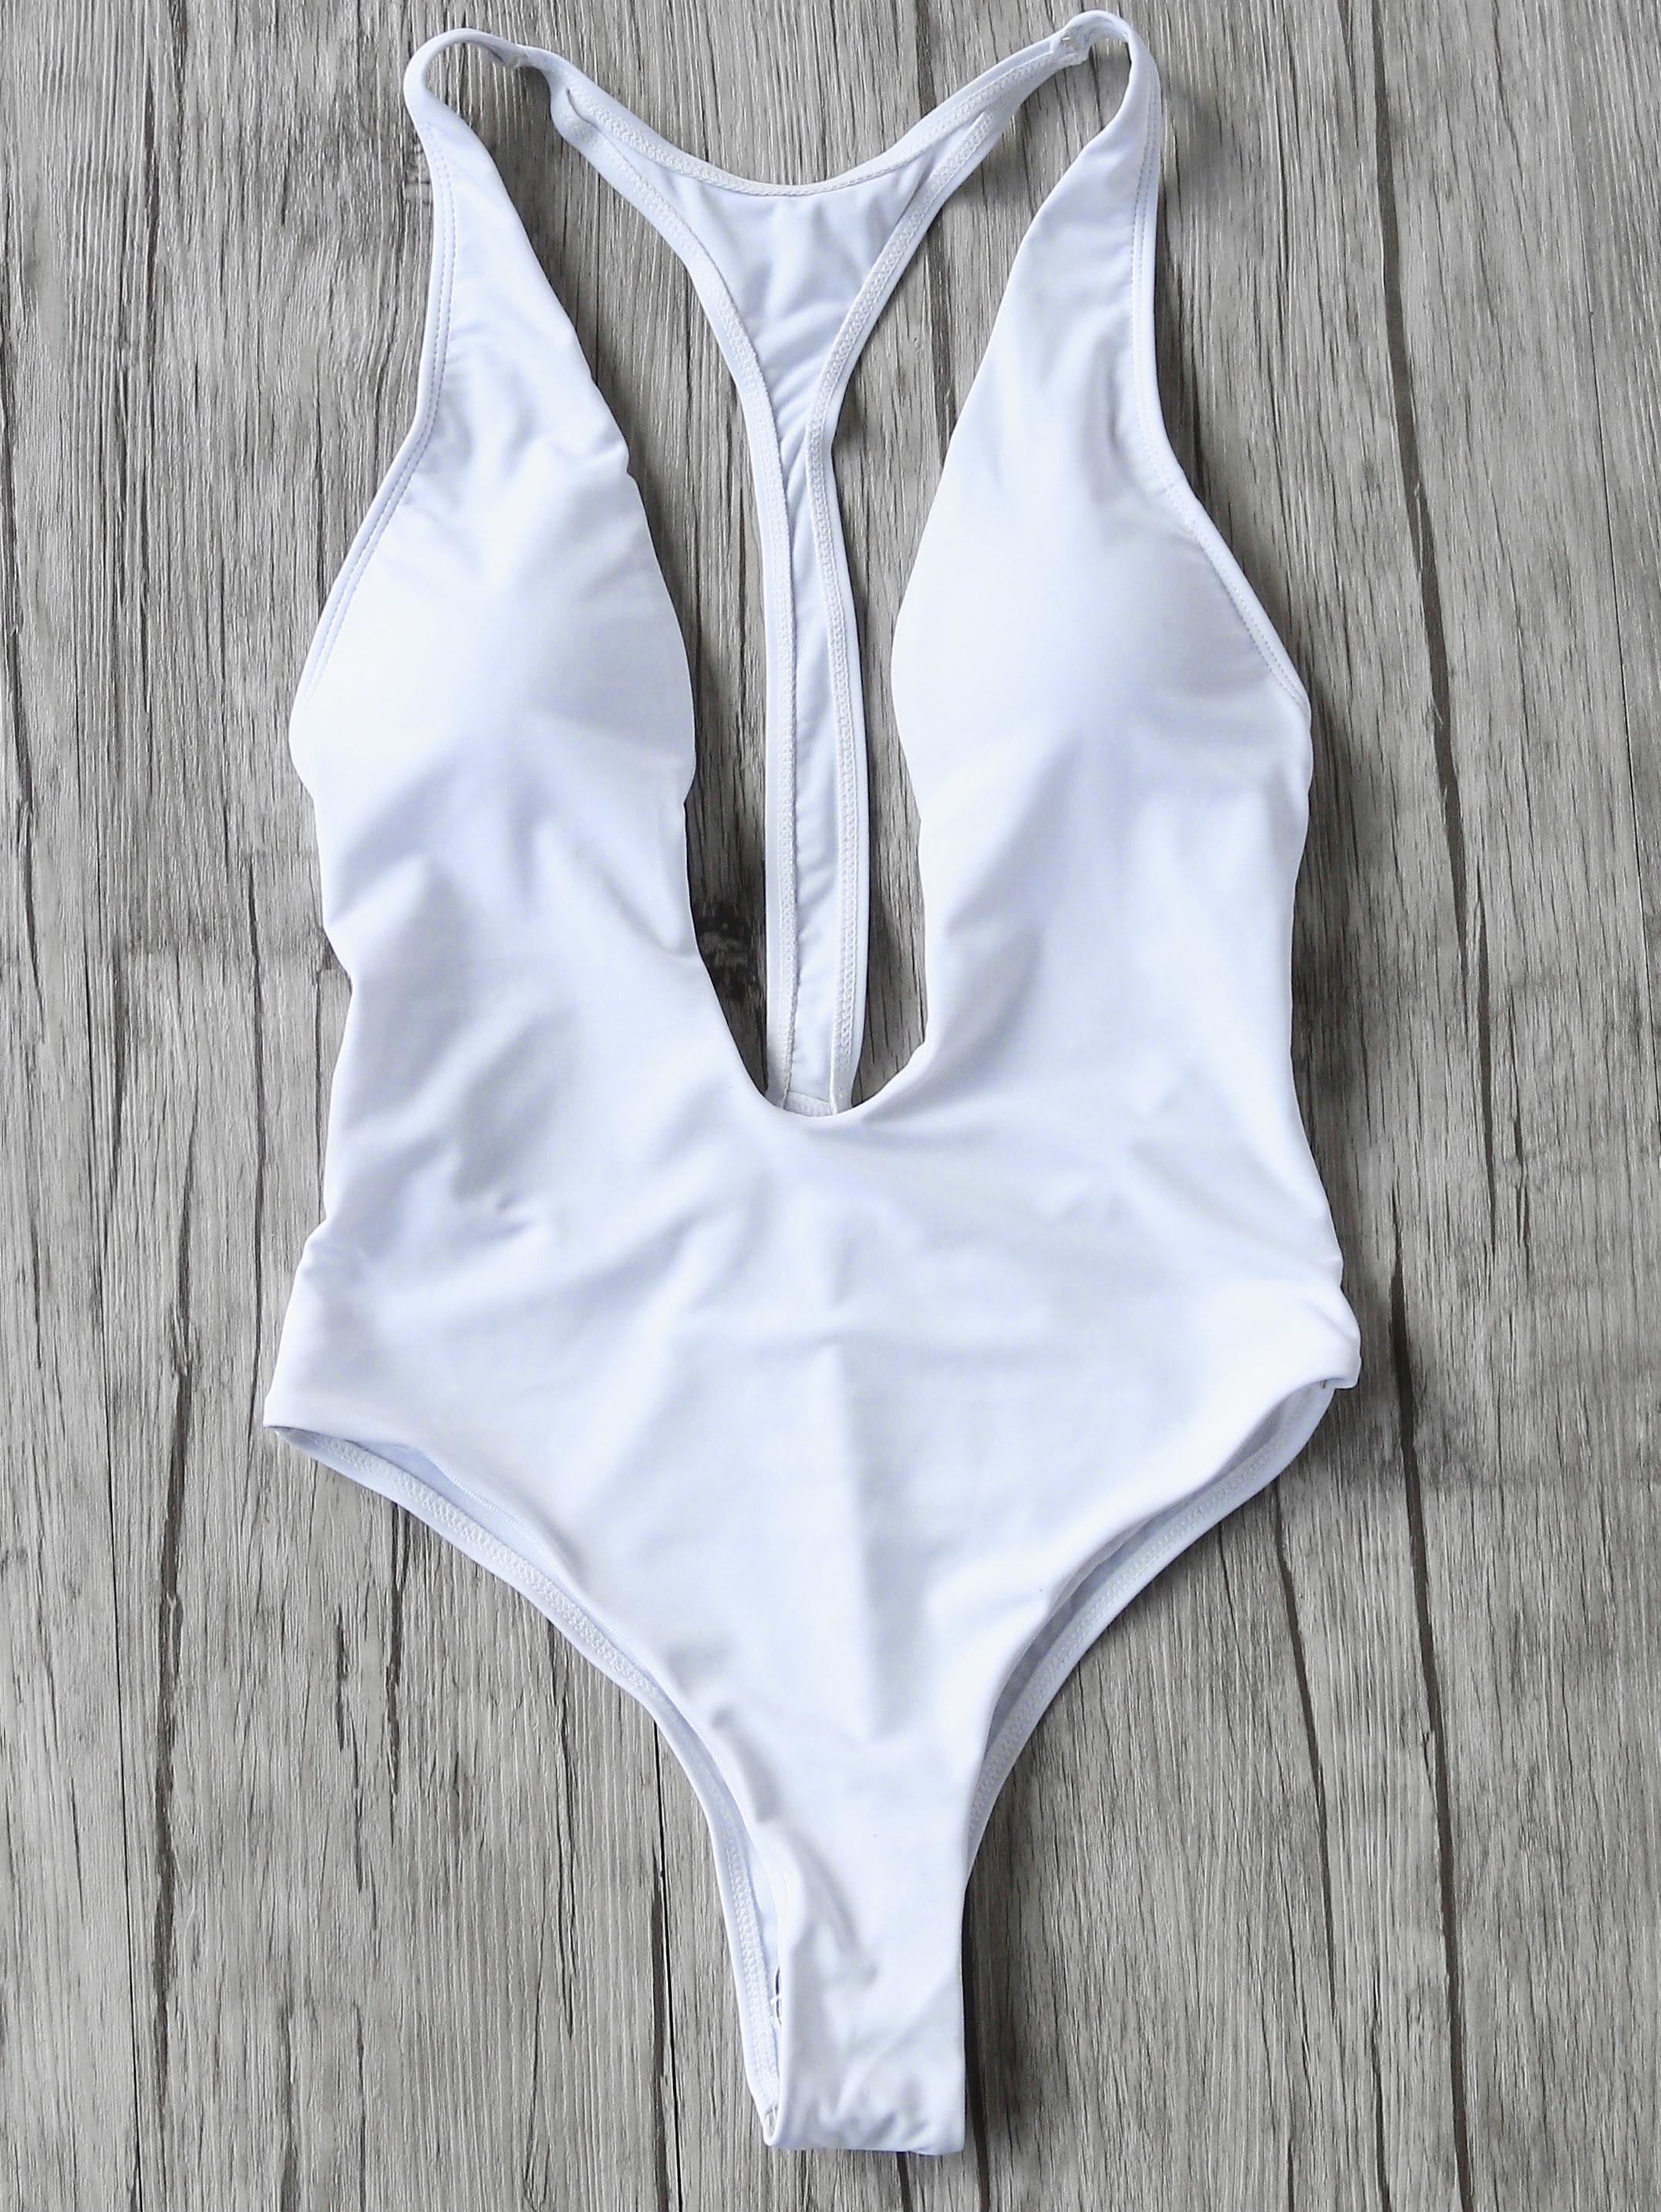 White Plunge Neck One-Piece Swimwear swimwear170306314